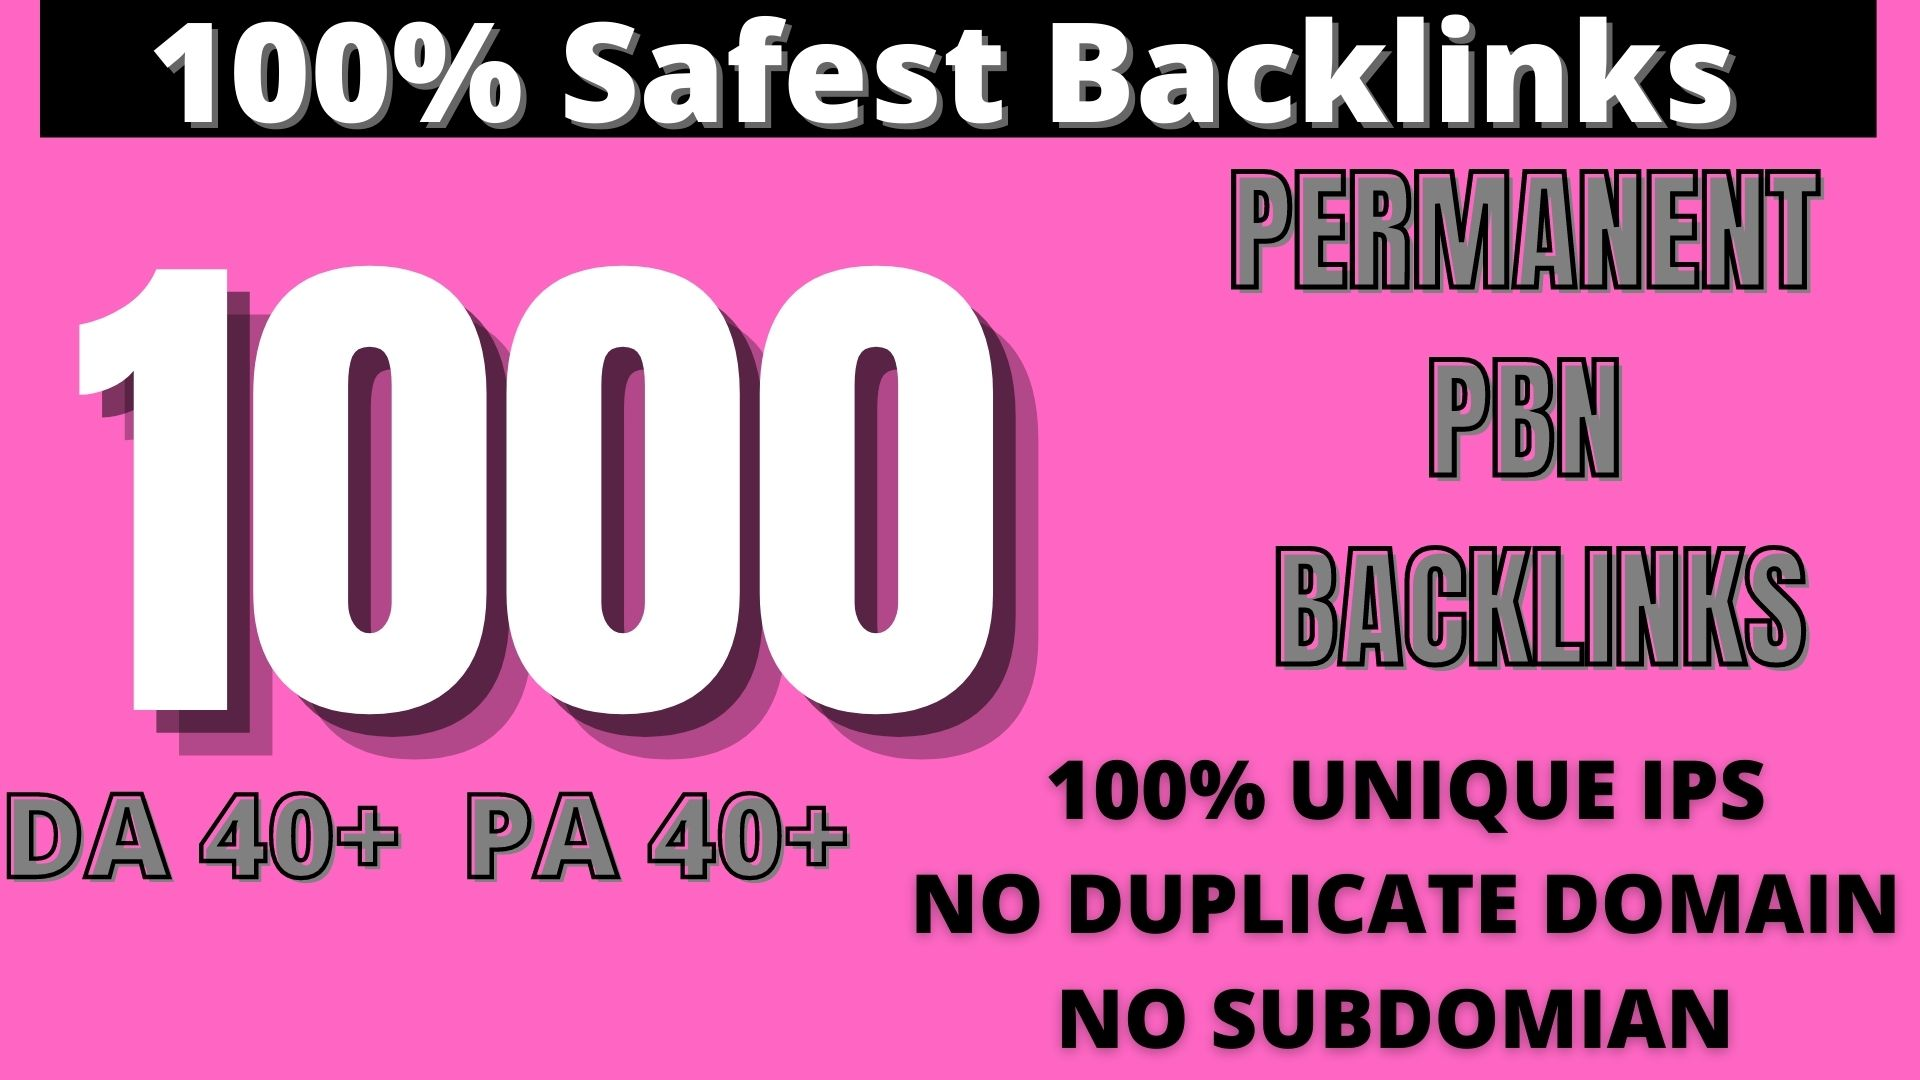 Create 1000 HOMEPAGE PBN Backlinks 1000 Dofollow & Permanent Links With High DA/PA/CF/TF web2.0